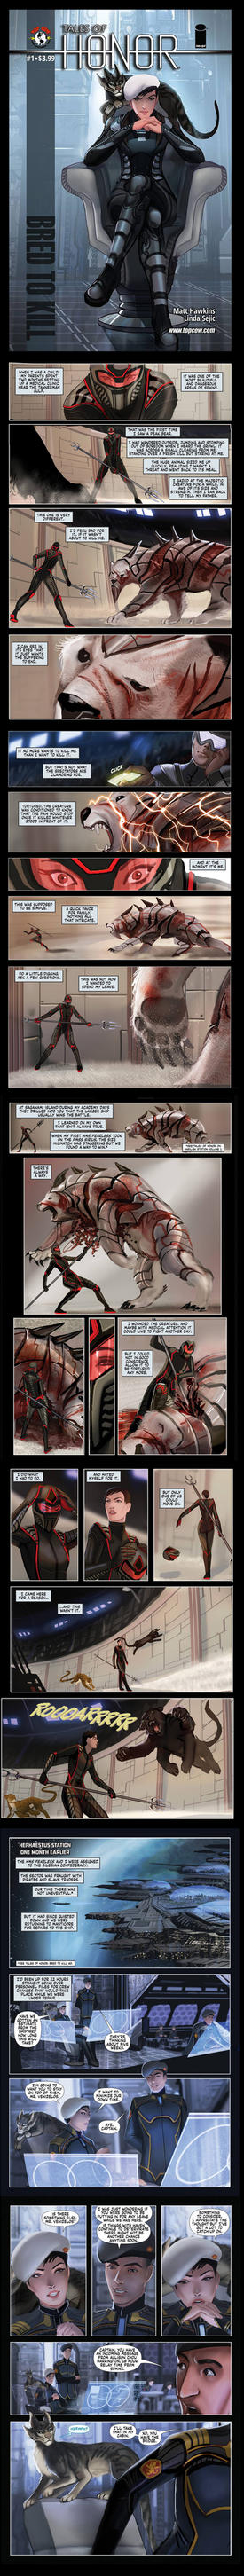 Tales of Honor 2 #1 preview pages by calisto-lynn